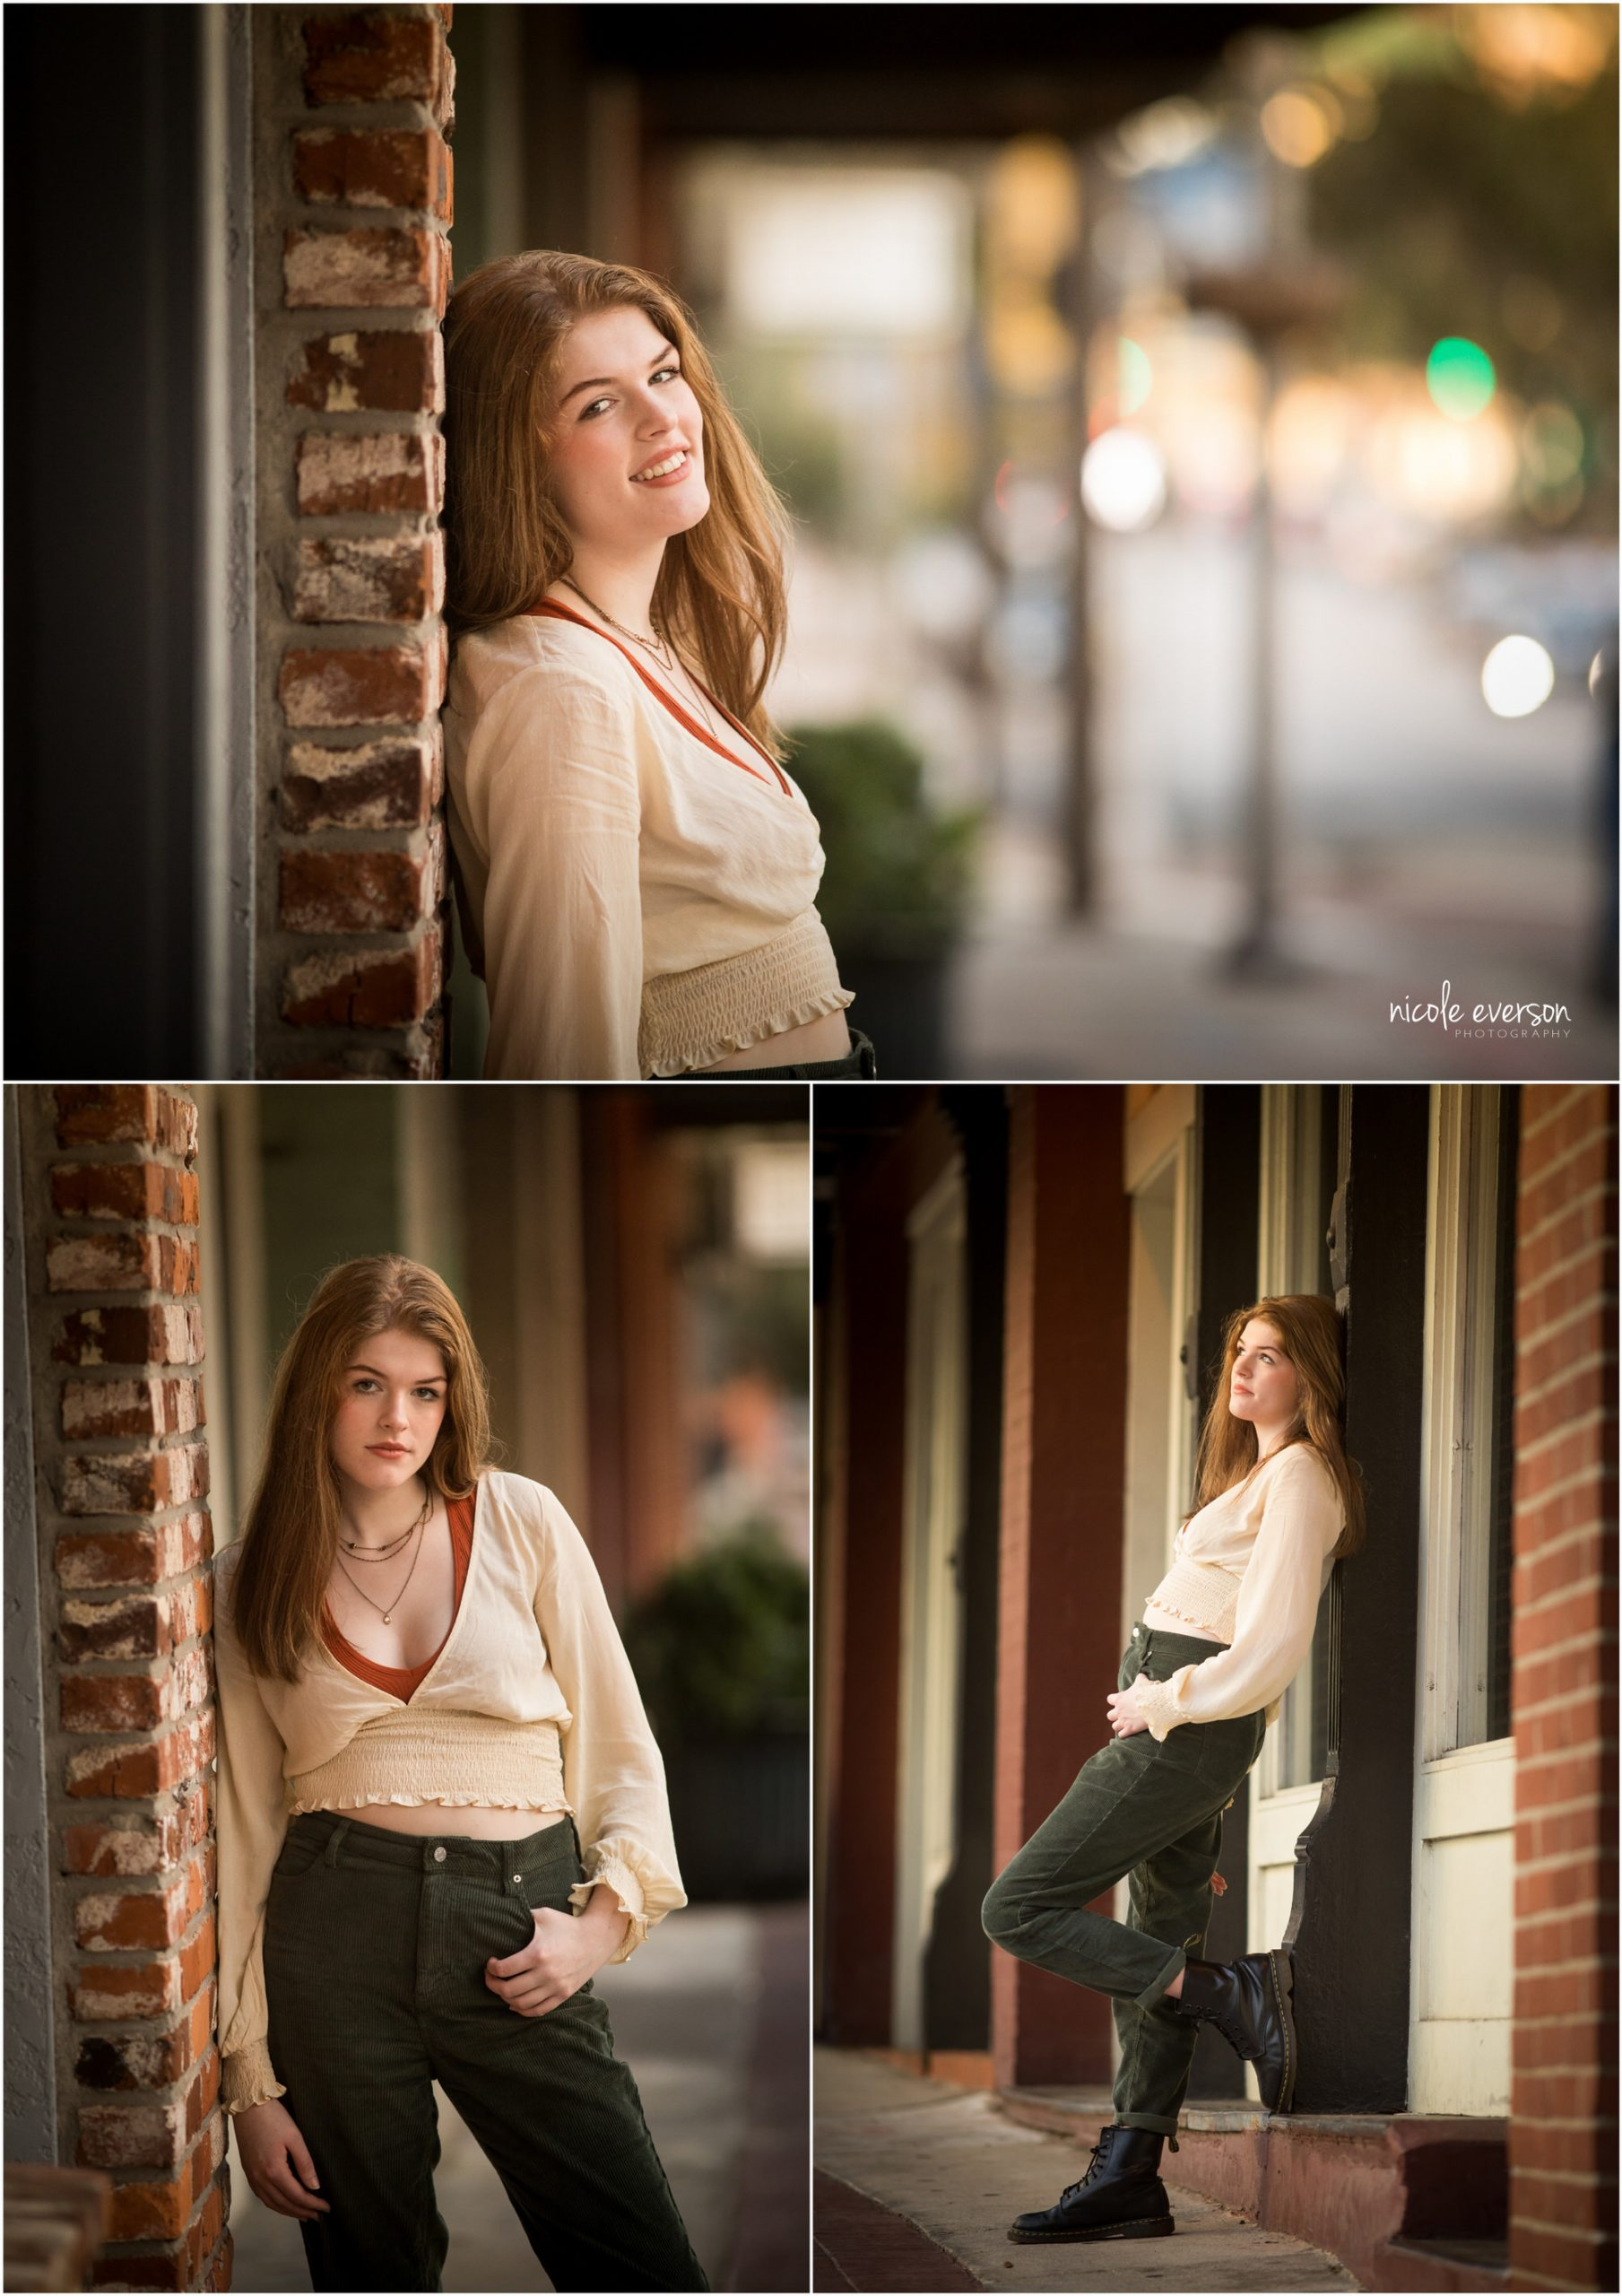 High school senior girl in cream top and jeans, wearing black boots. Tallahassee, Florida Senior Photography by Nicole Everson Photography.